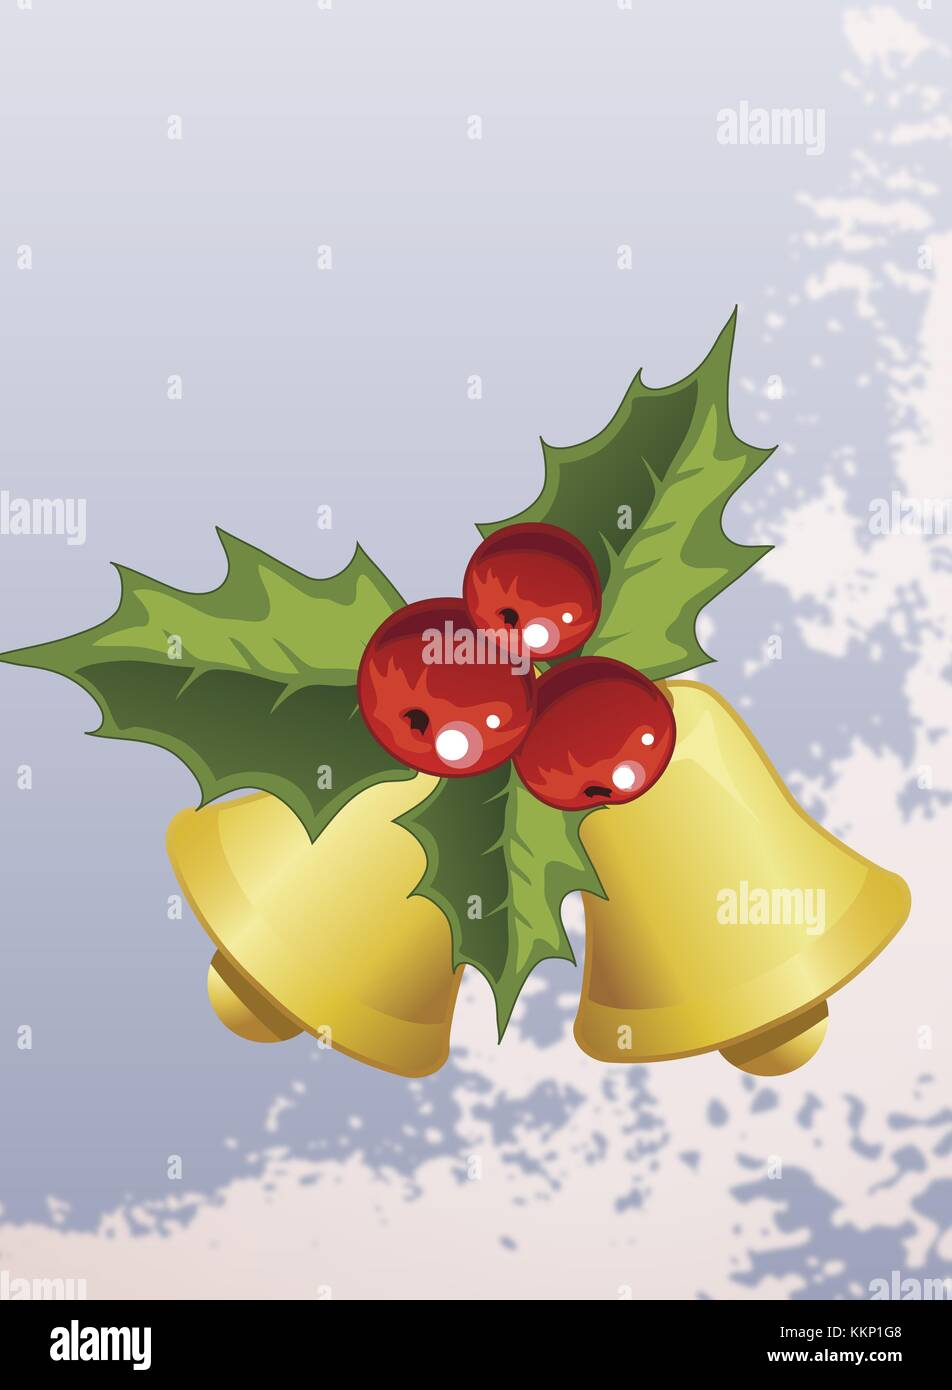 christmas bells clip art - Stock Image